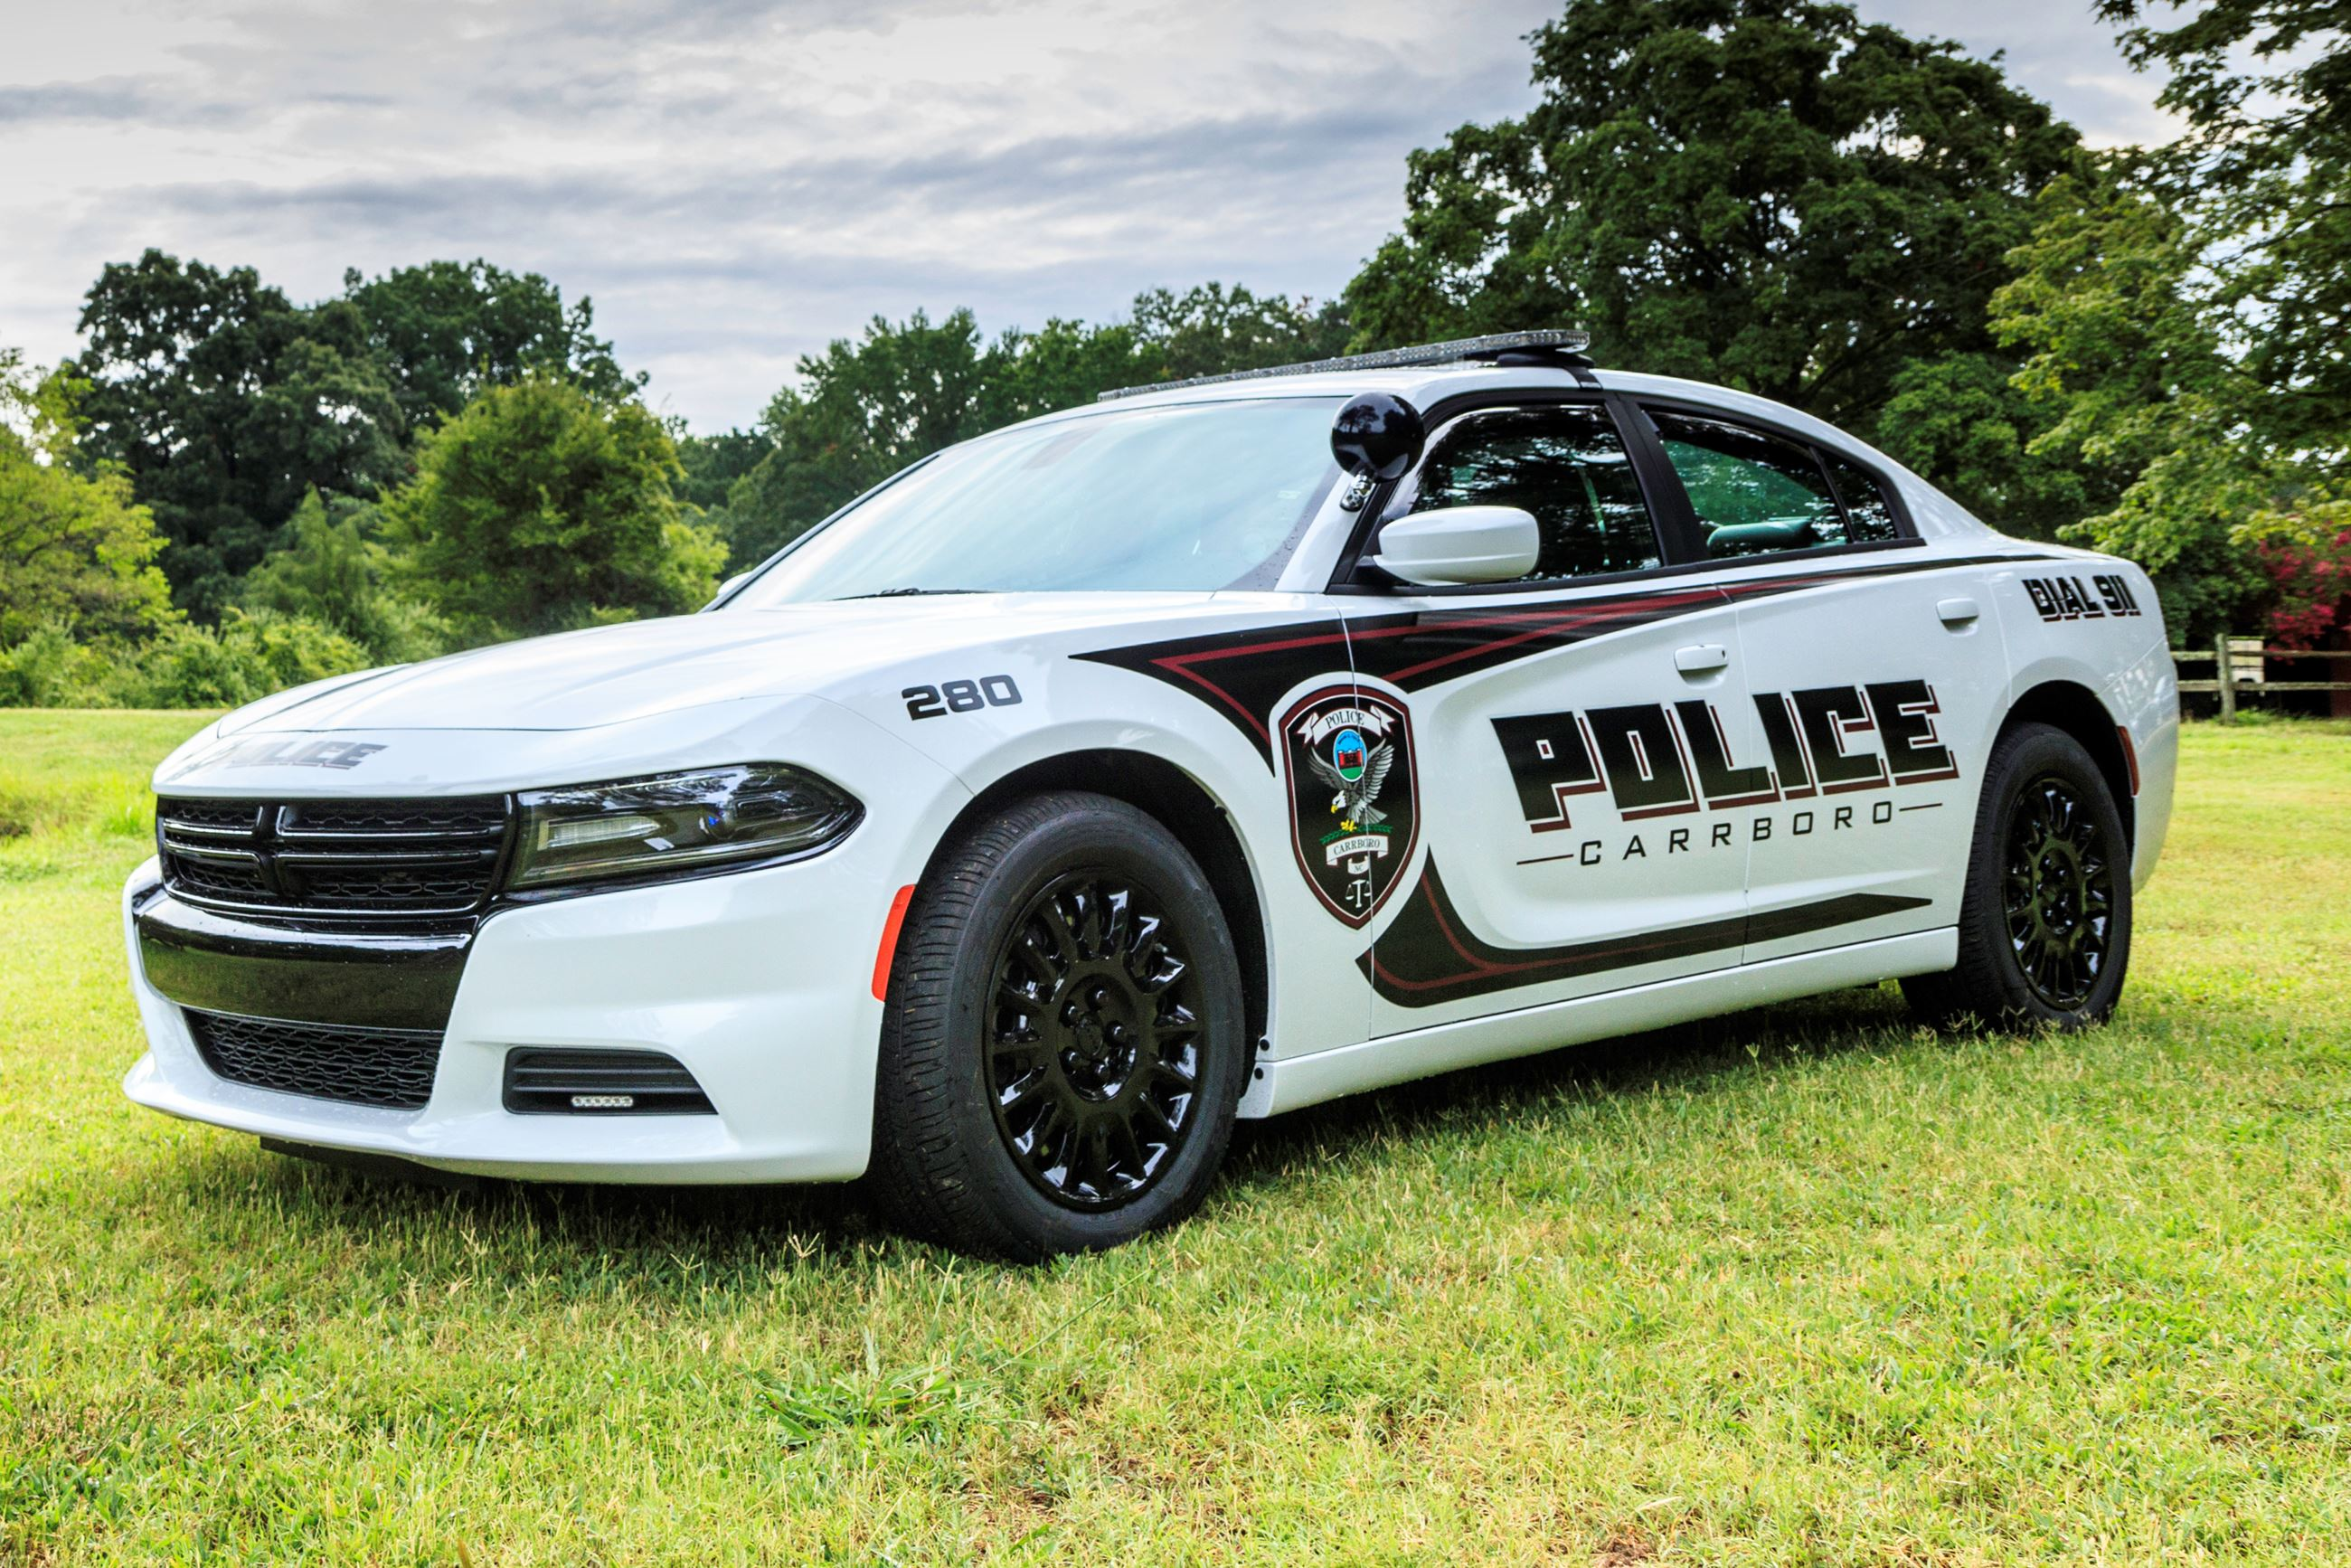 Police Car Website >> Equipment Technology Carrboro Nc Official Website